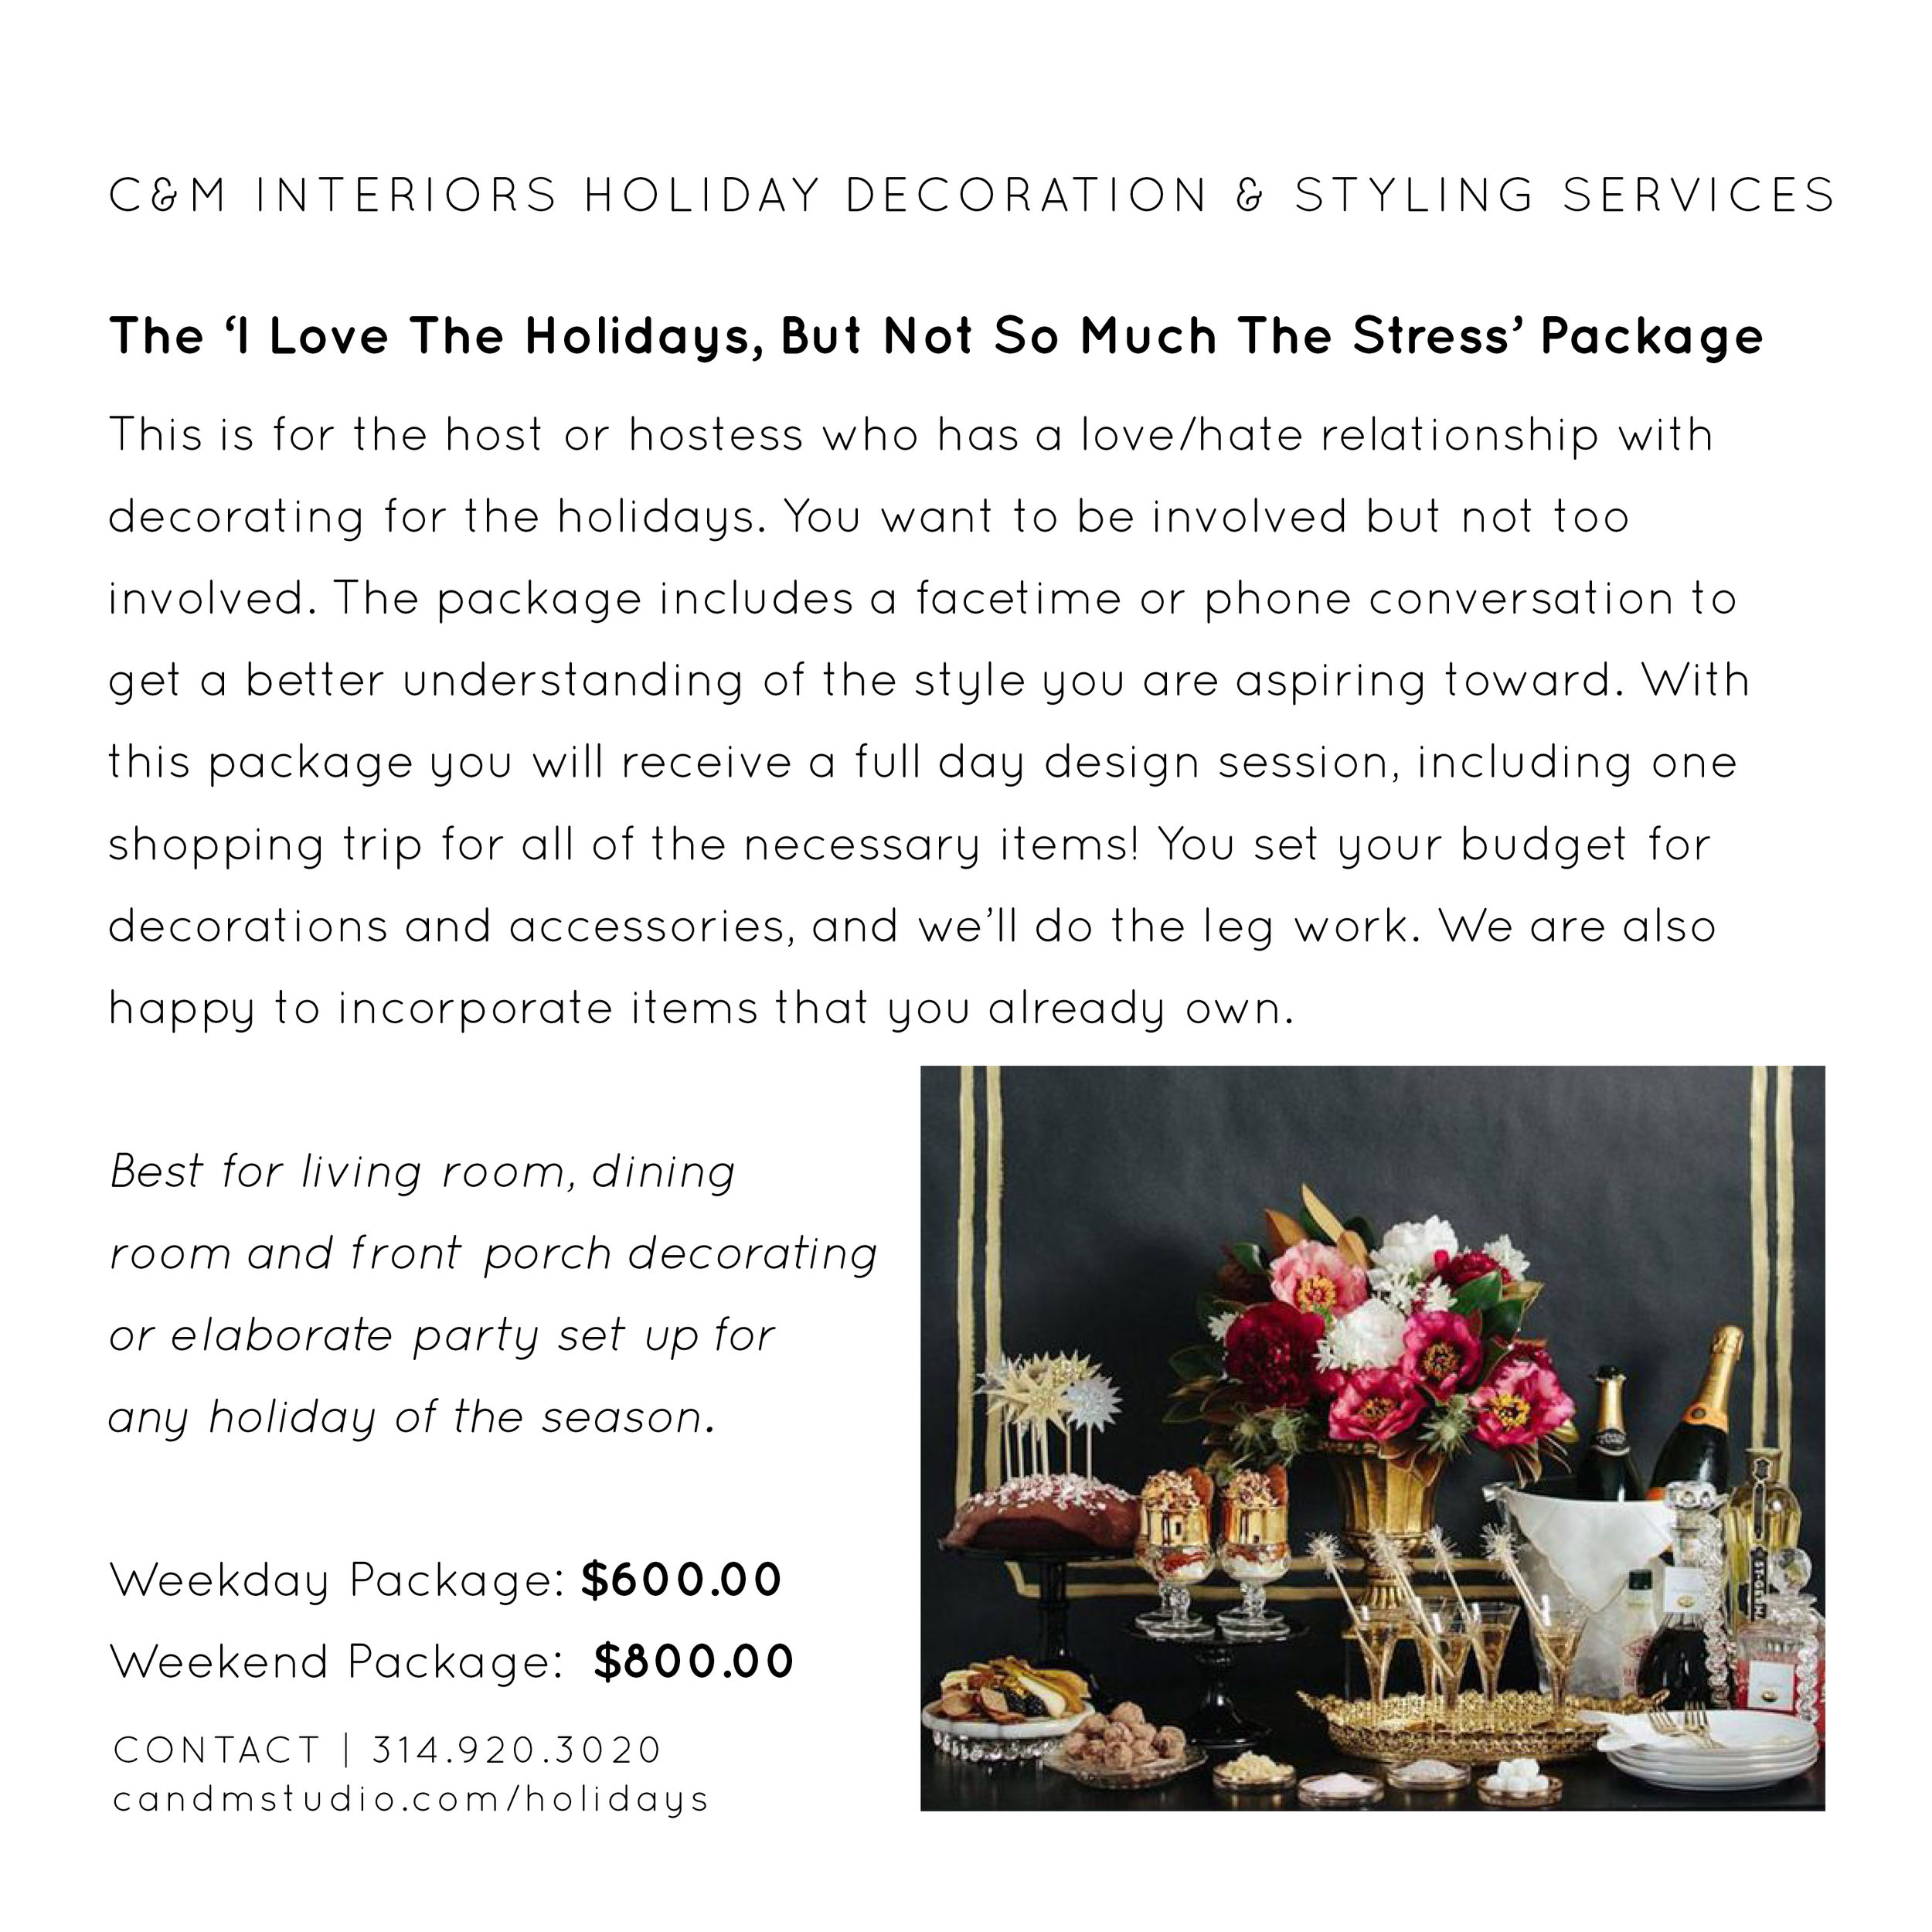 C&M Interiors Holiday Decoration and Styling Services 20174.jpg